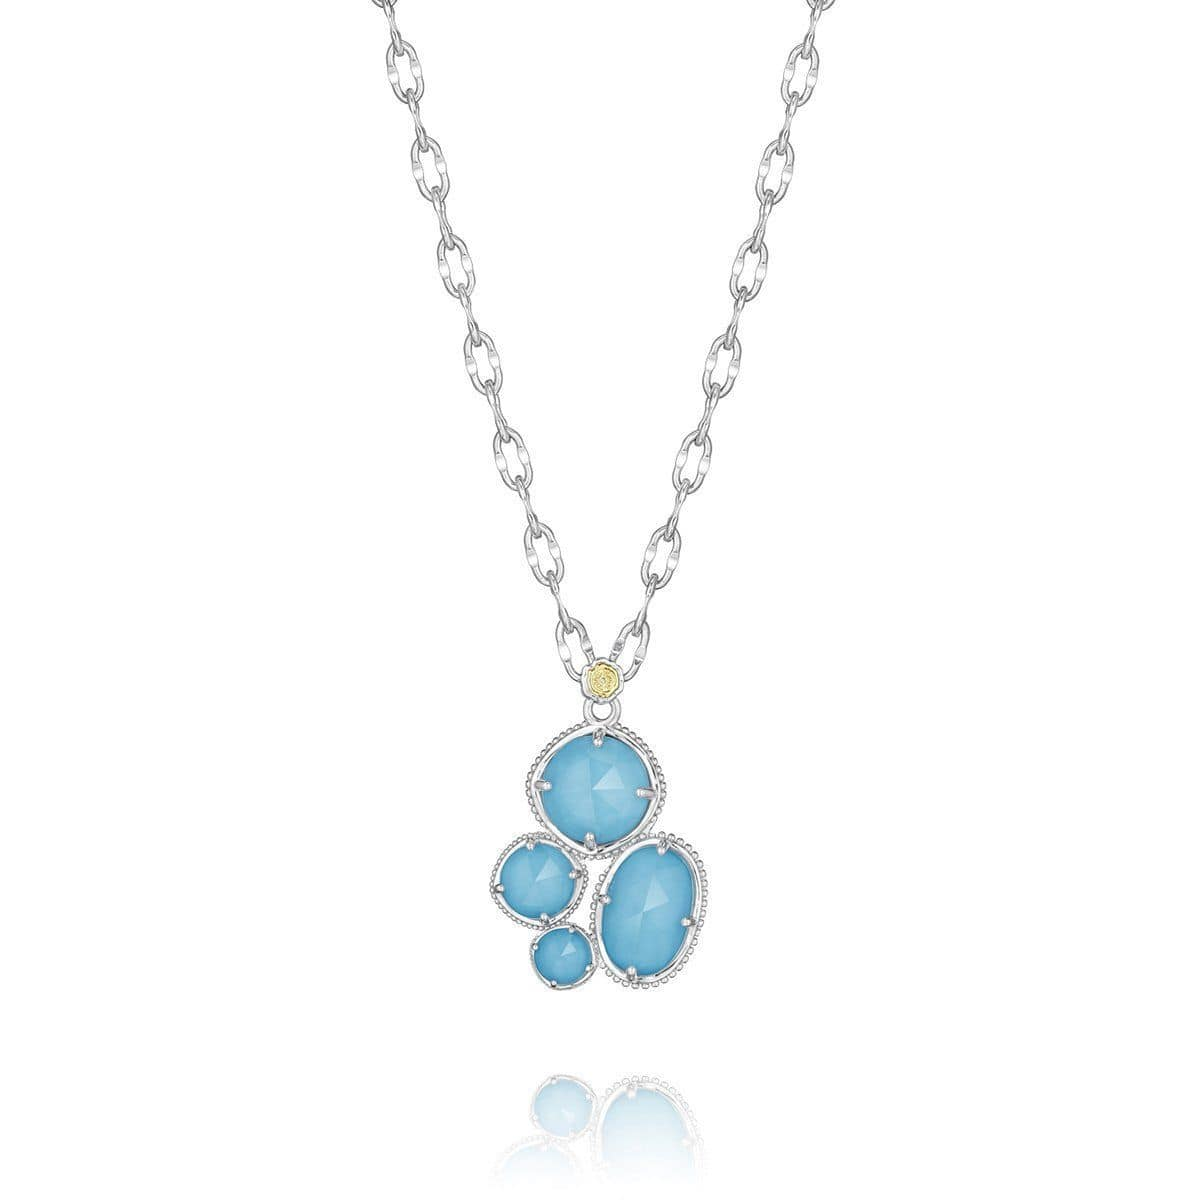 Quartz Over Neolite Turquoise Circle Necklace - SN14405-Tacori-Renee Taylor Gallery